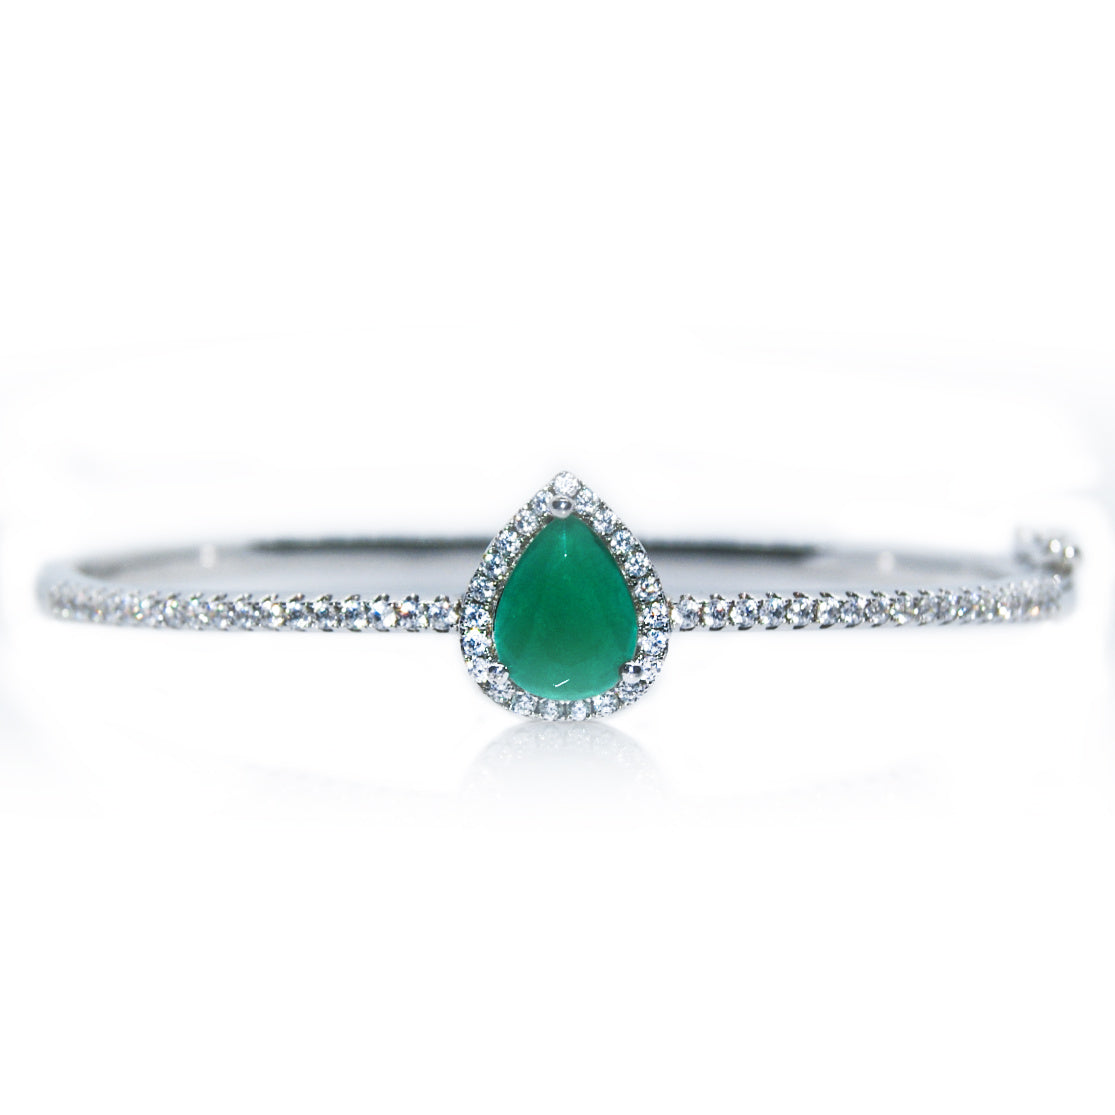 'ELIZA' Pear-Cut Emerald & Round-Cut DiamondB Bracelet | BRACELETS | BECKY THE LABEL - luxury accessories & jewelry brand